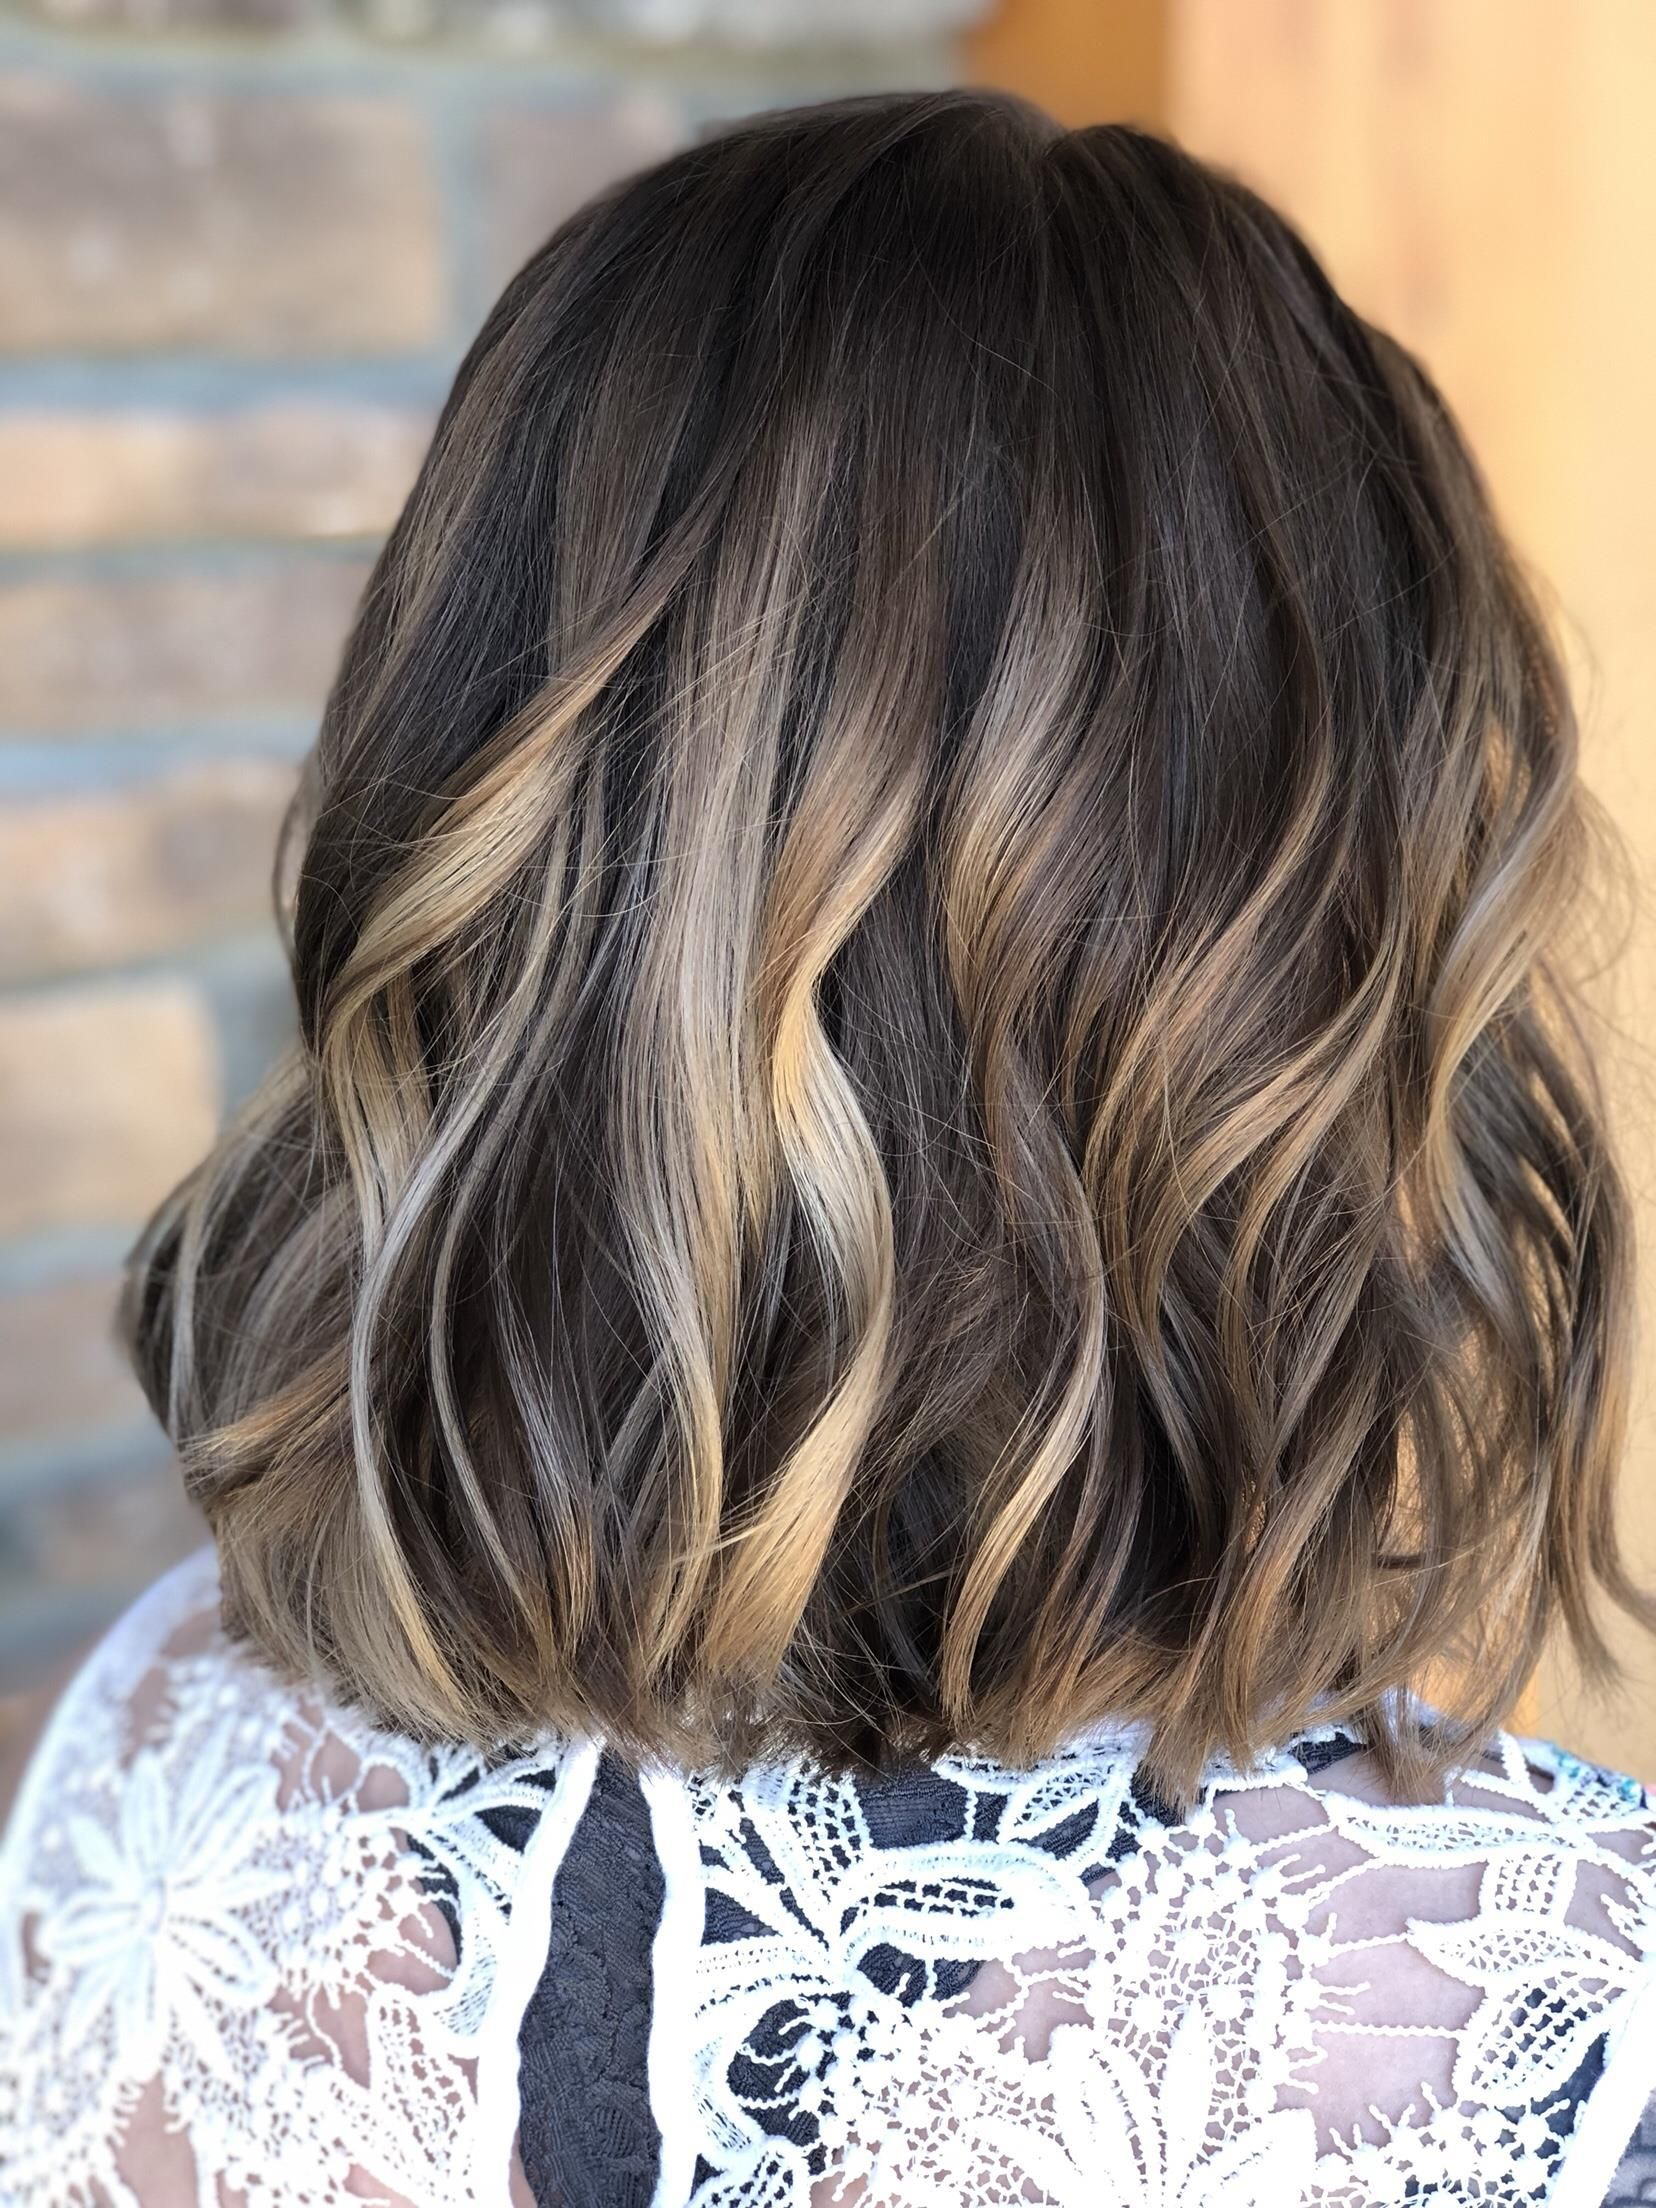 Color 75 Most Requested Services For Shoulder Length Hair Starting At 75 Picture Above Is A Above Shoulder Hair Above Shoulder Length Hair Hair Lengths